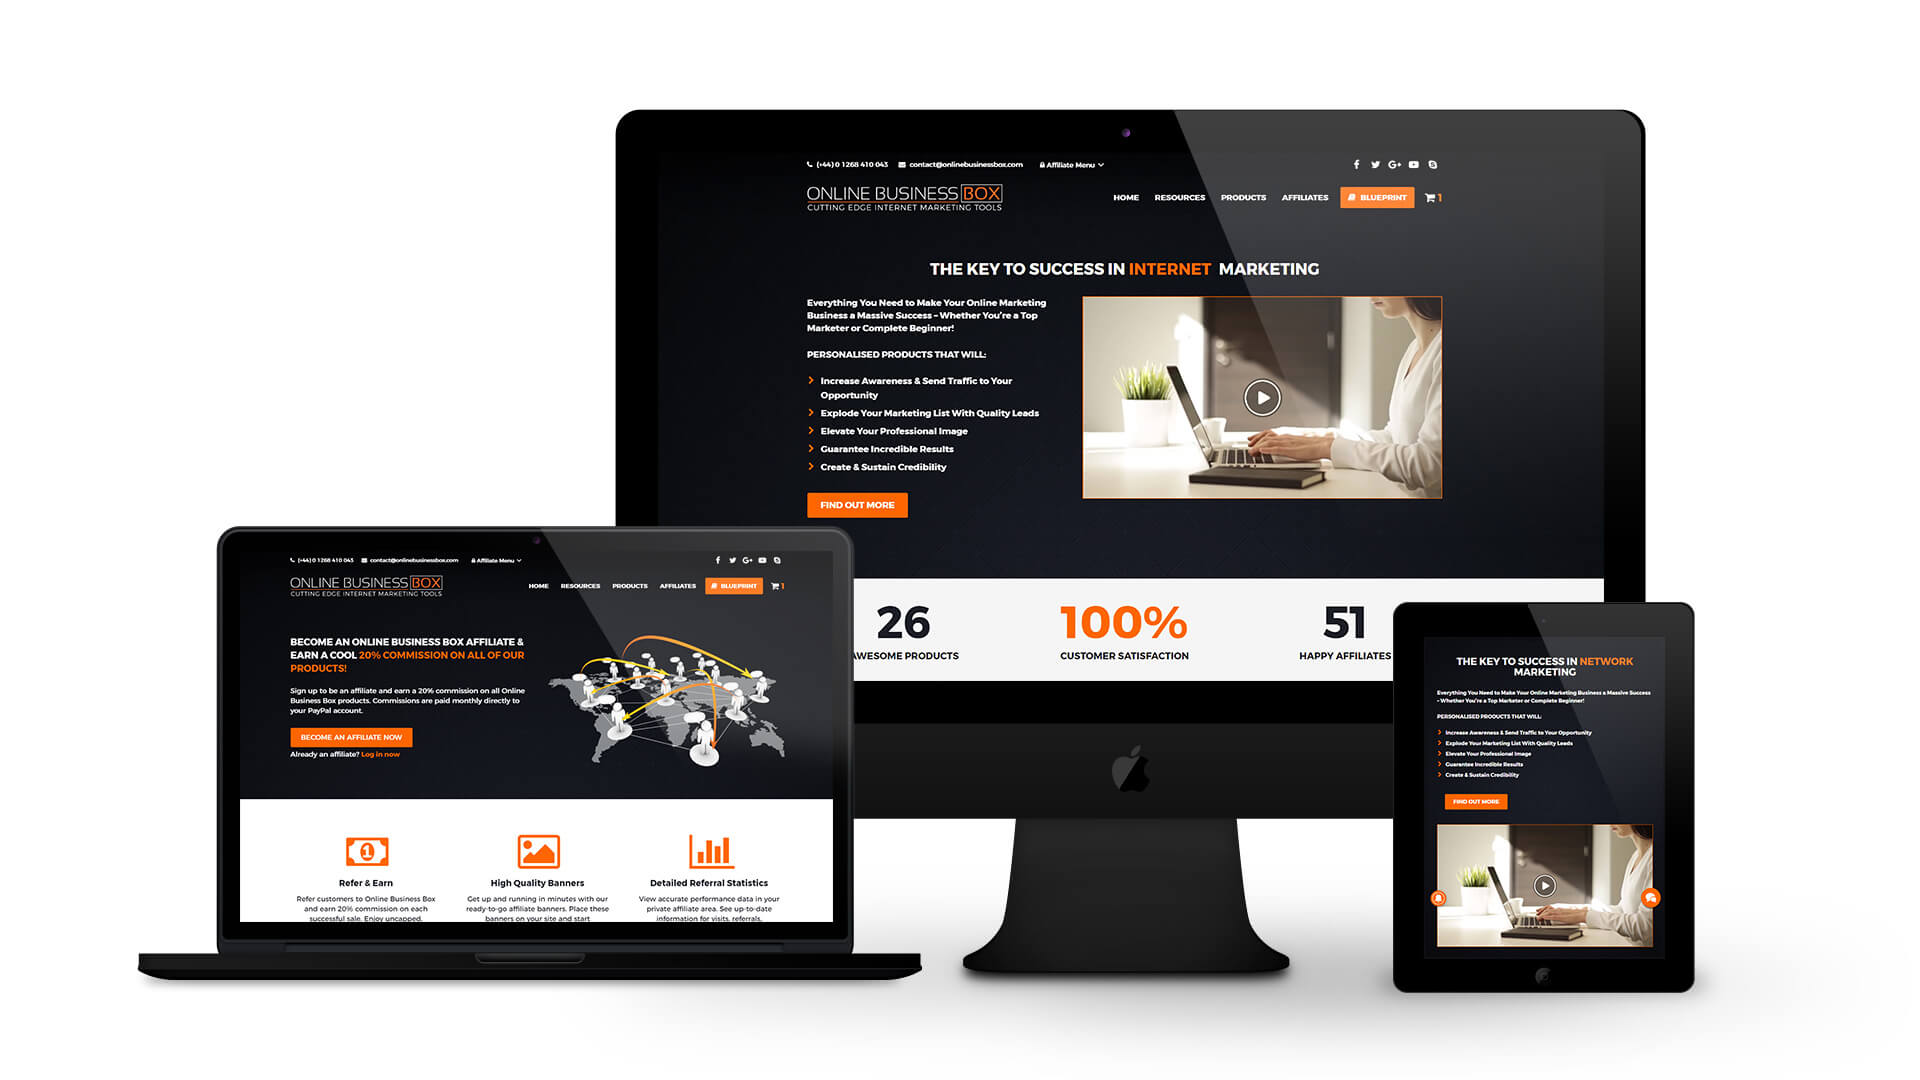 Online Business Box - By Ice Cube Web Design